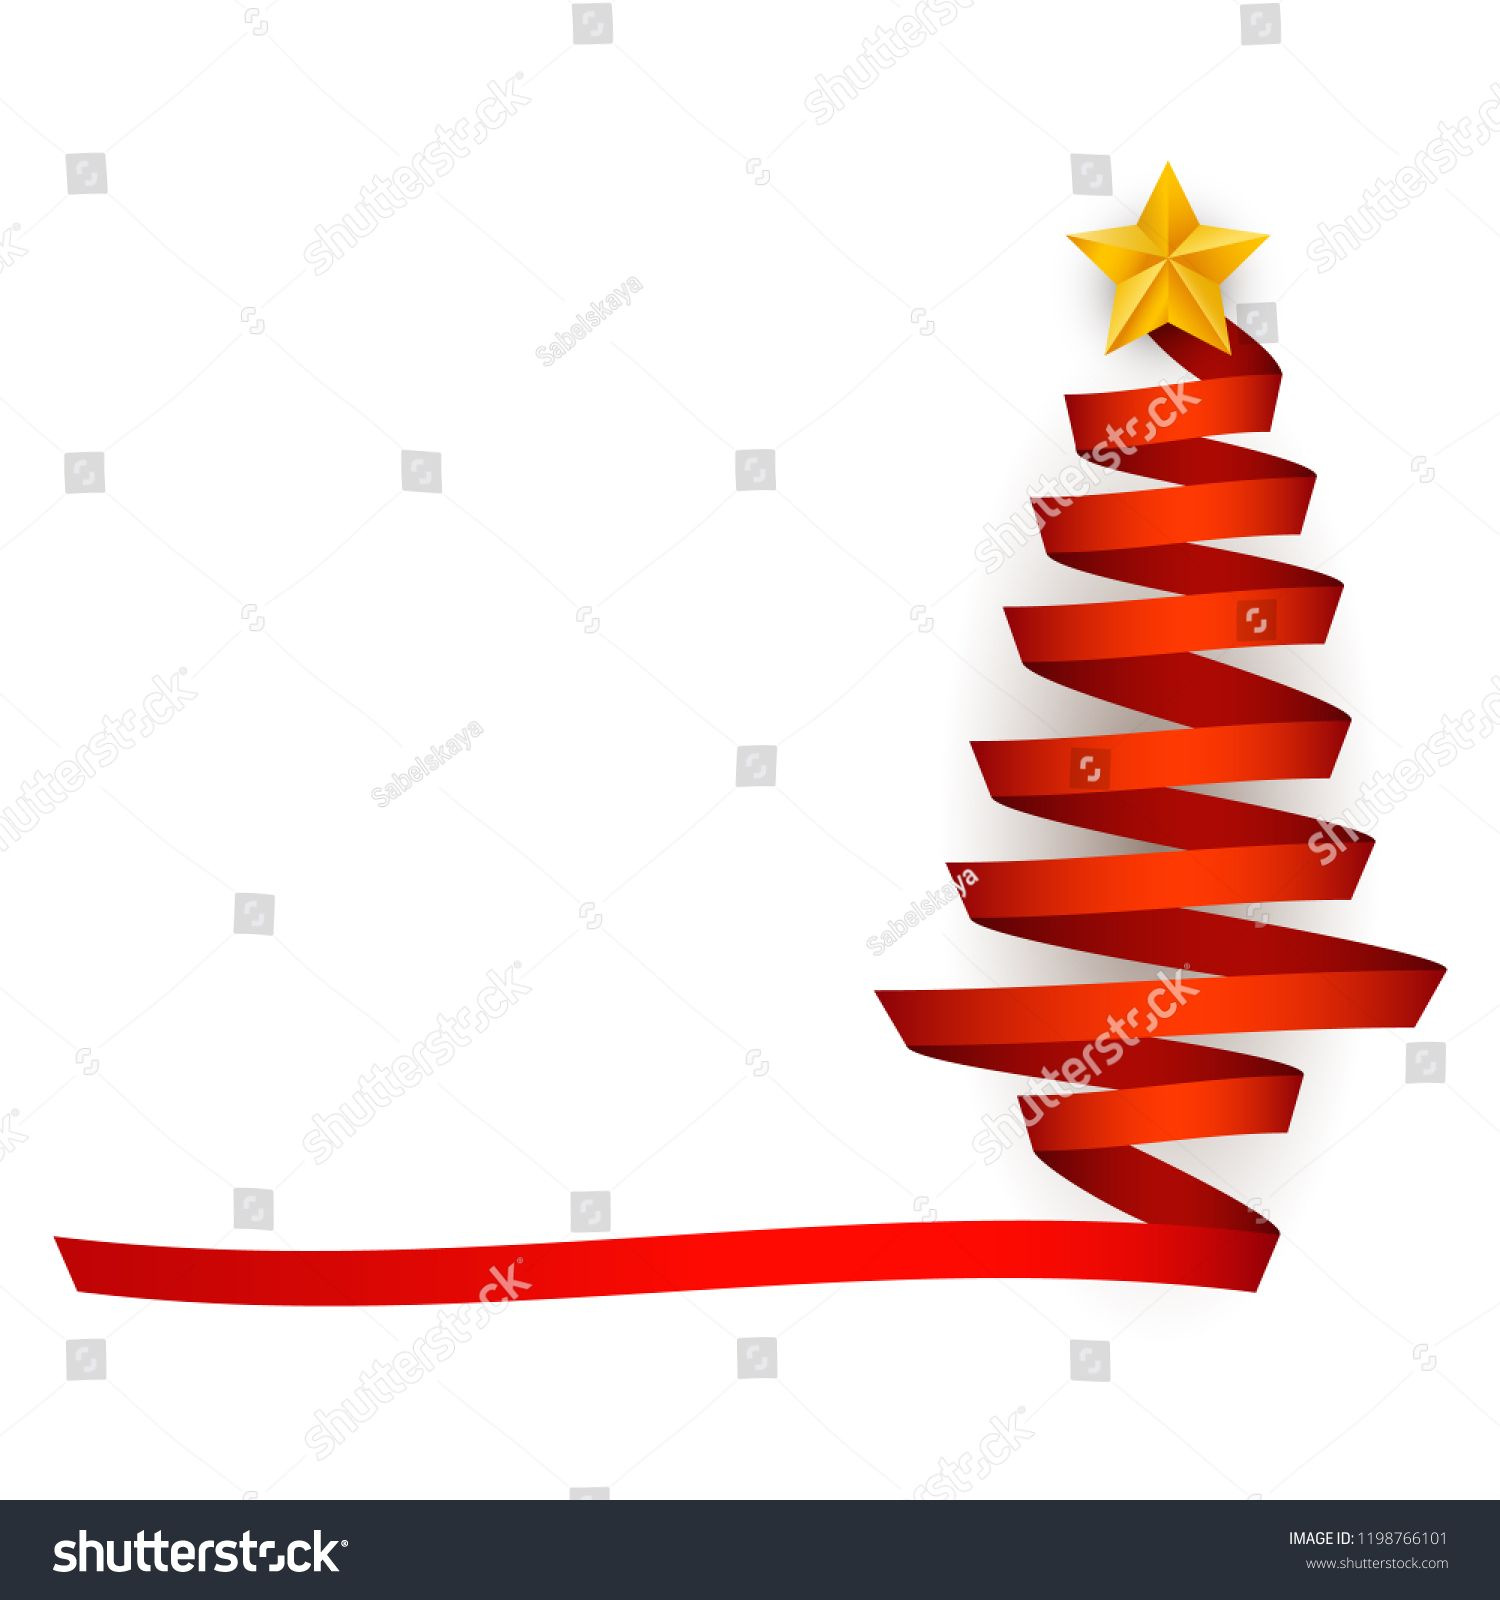 Vector Flat Red Ribbon Christmas Tree With Golden Star At Top Traditional Winter Holiday Merry Christmas And Happy New Year New Years Decorations Red Ribbon